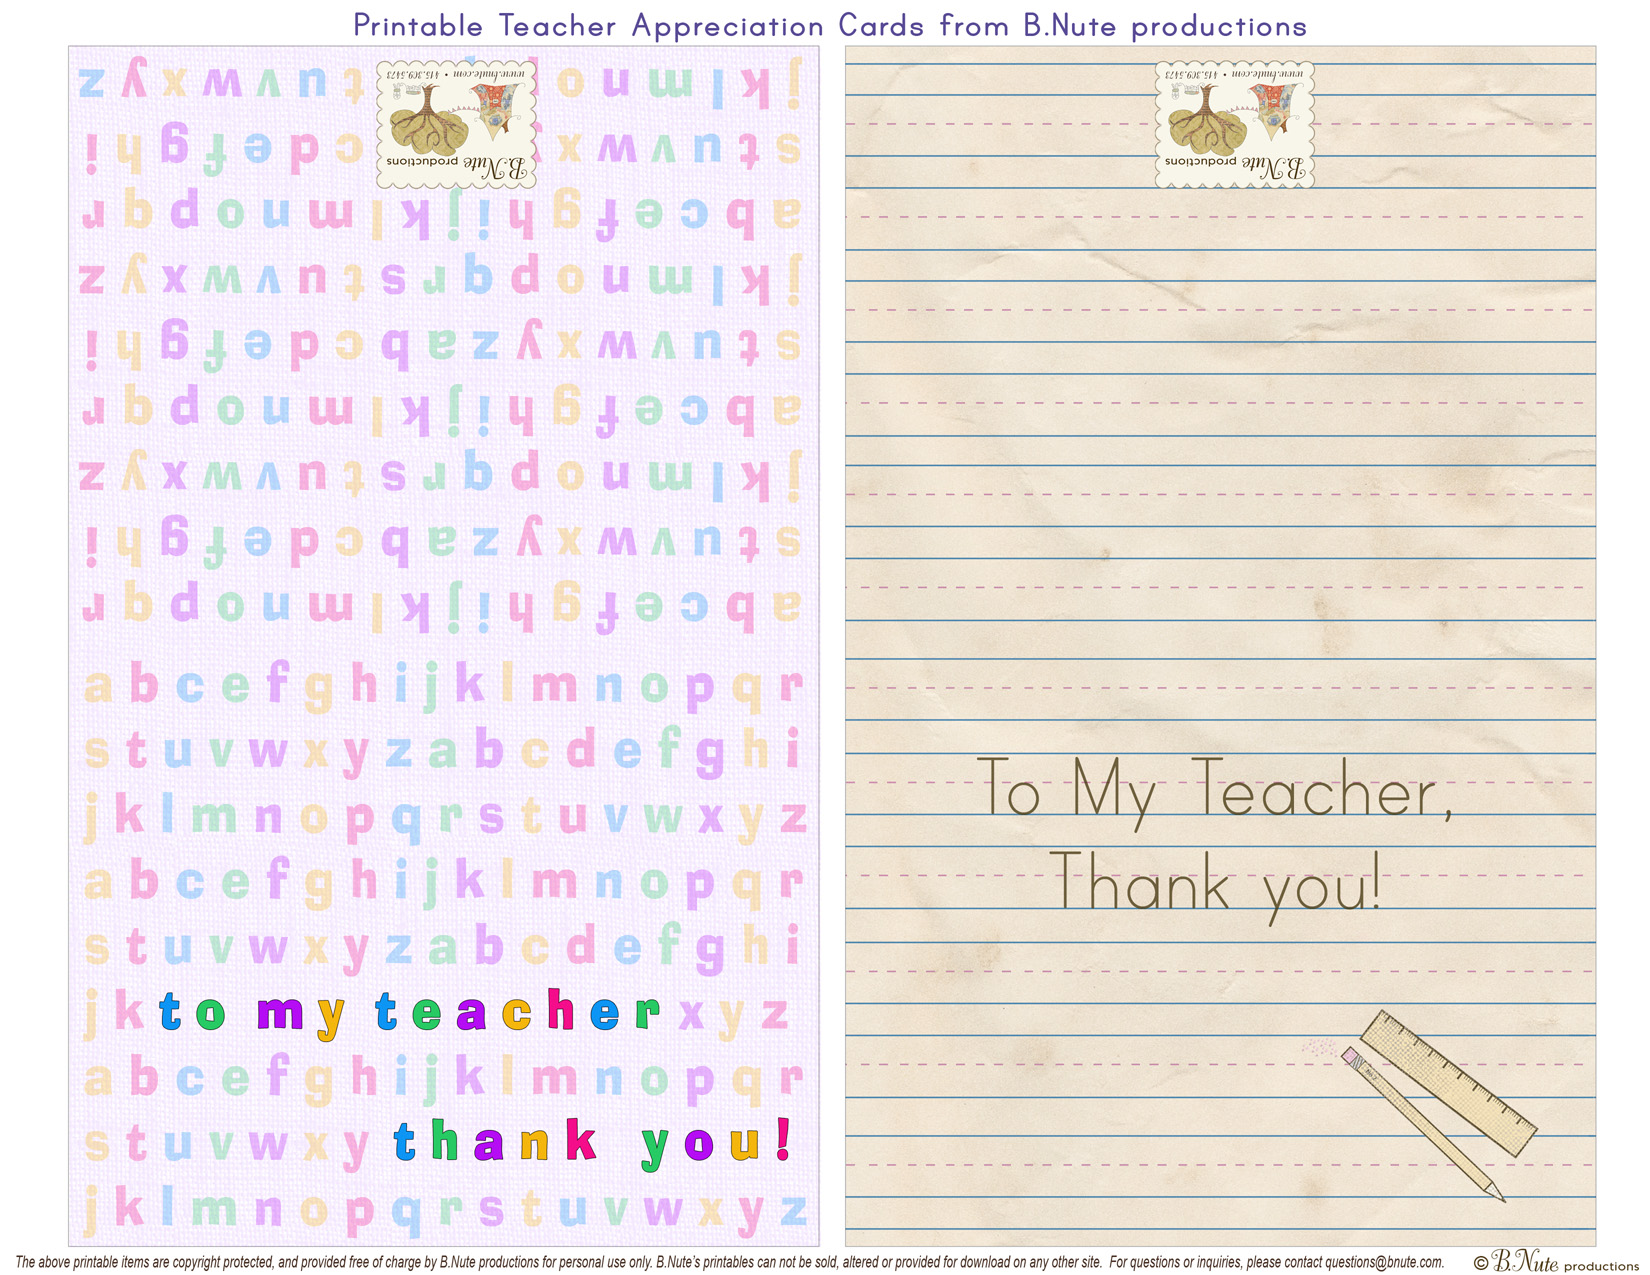 Adaptable image pertaining to teacher appreciation cards printable